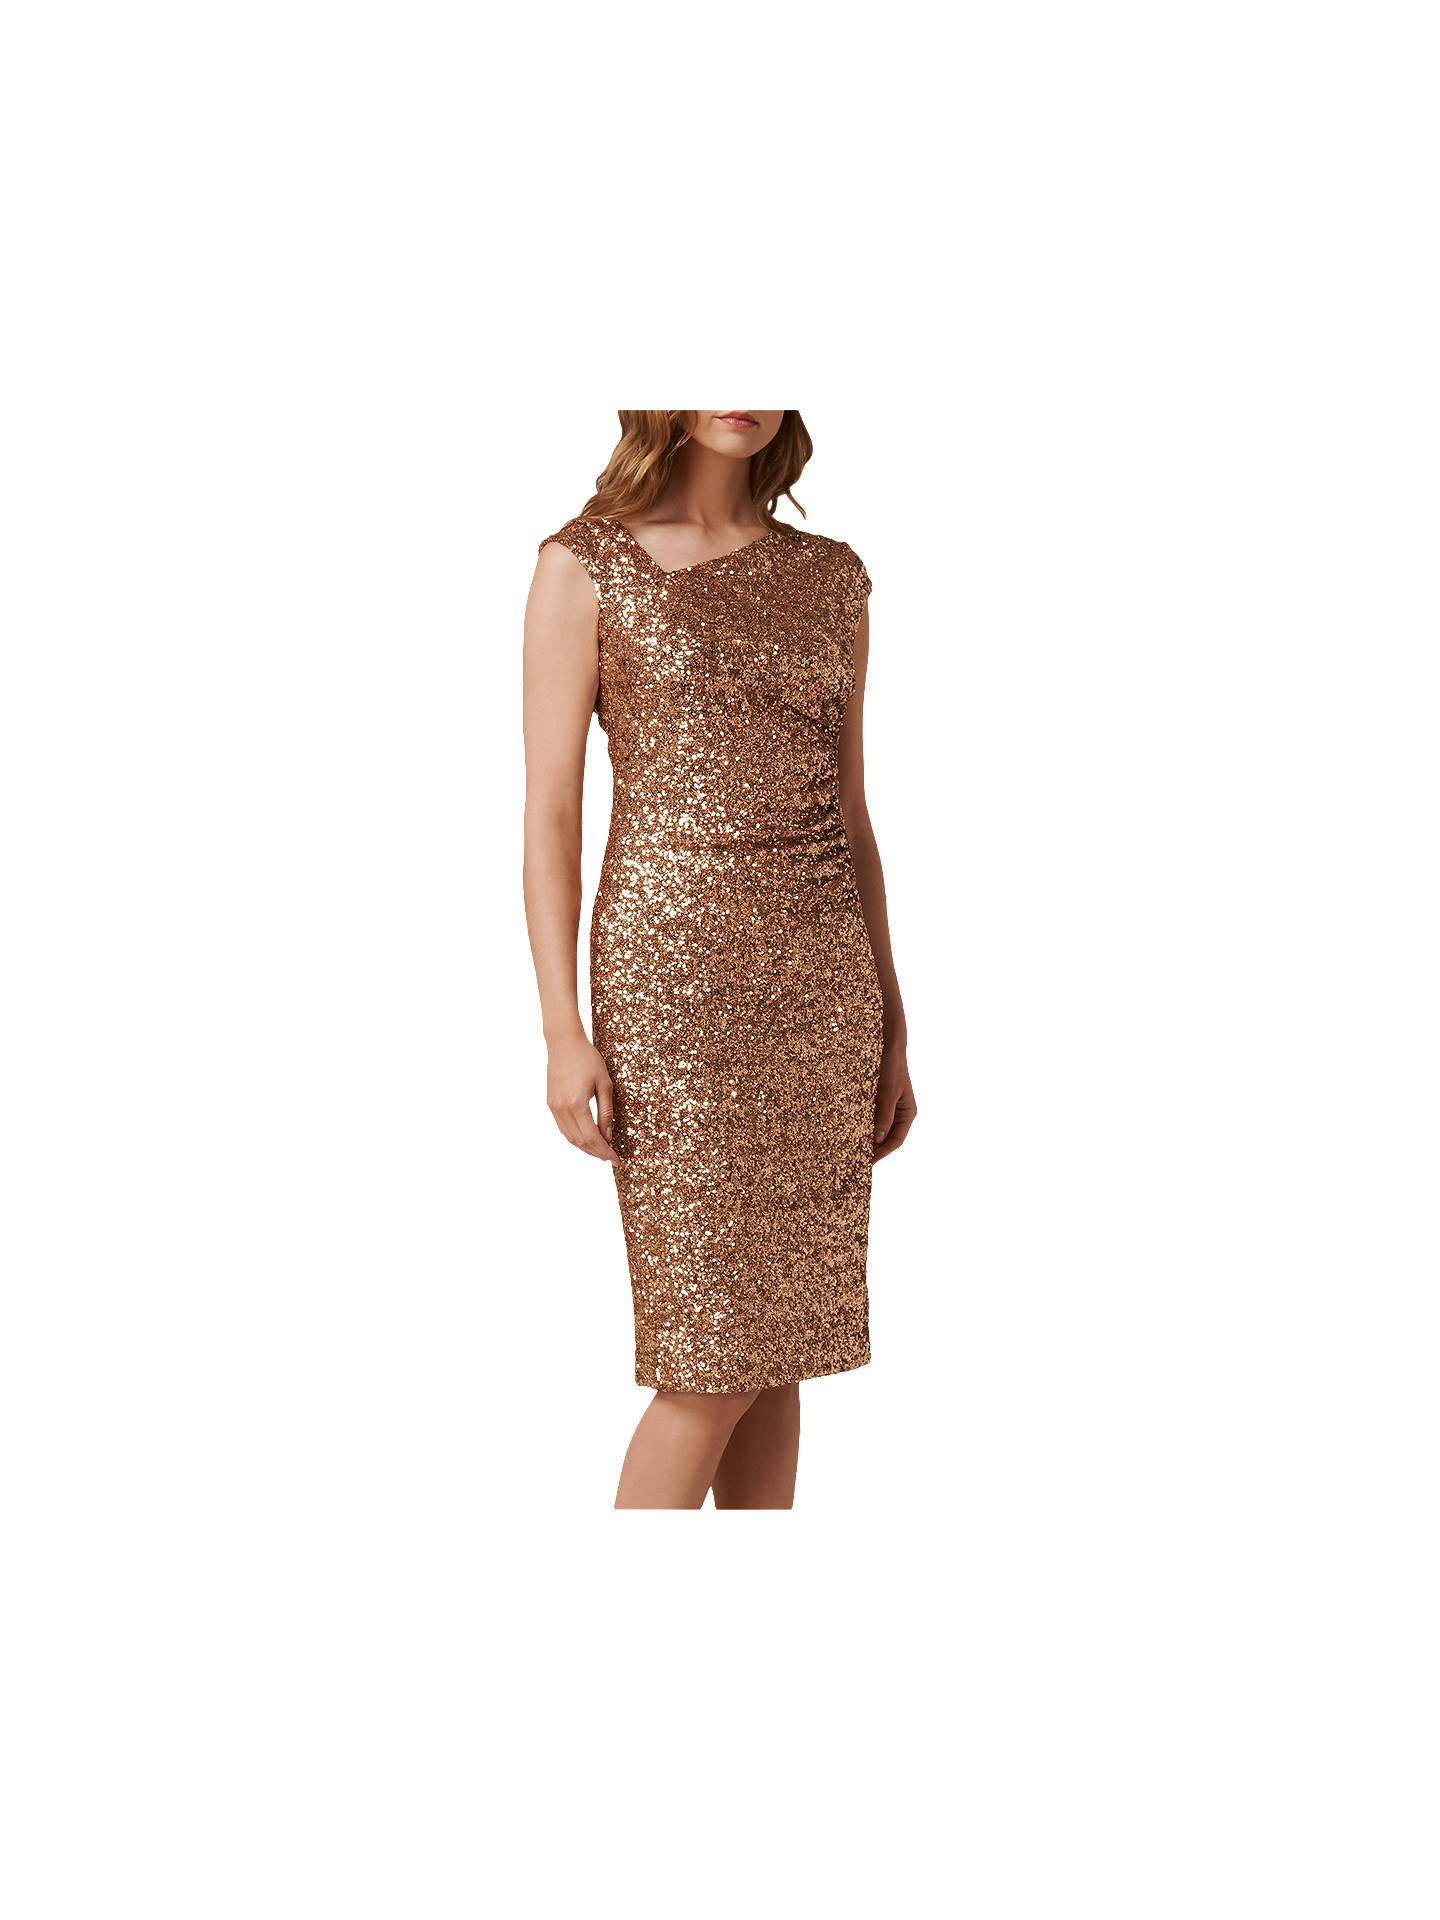 73ab9e0a ... Buy L.K. Bennett Jazz Sequin Dress, Gold, 6 Online at johnlewis.com